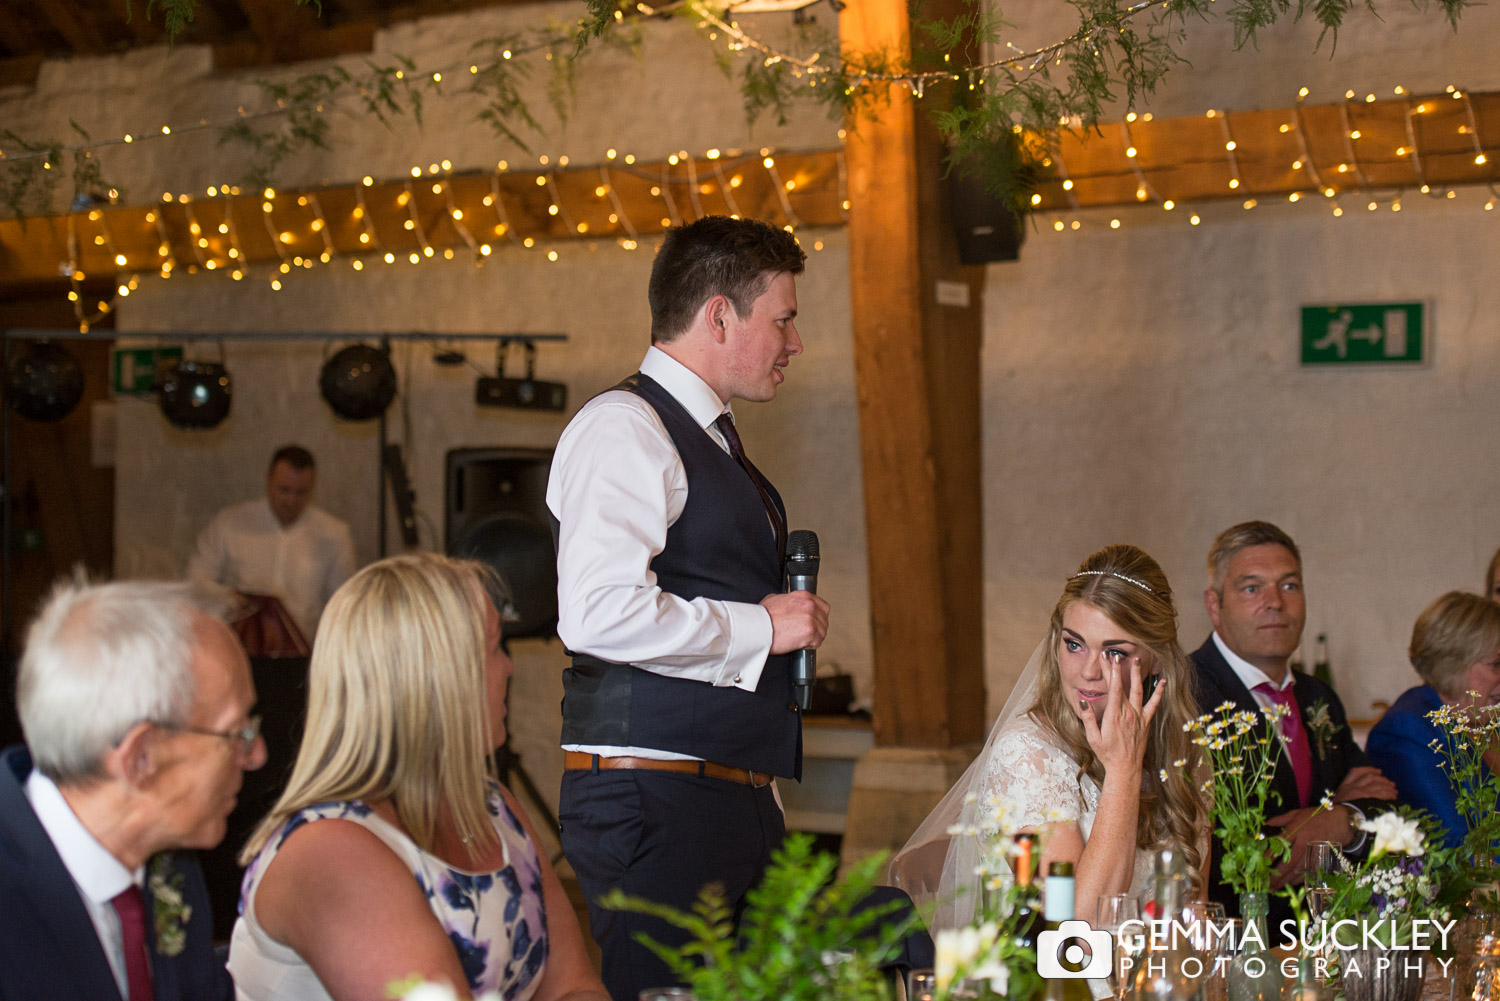 barn-weddings-at-east-riddlesden-hall-speeches©gemmasuckleyphotography.JPG